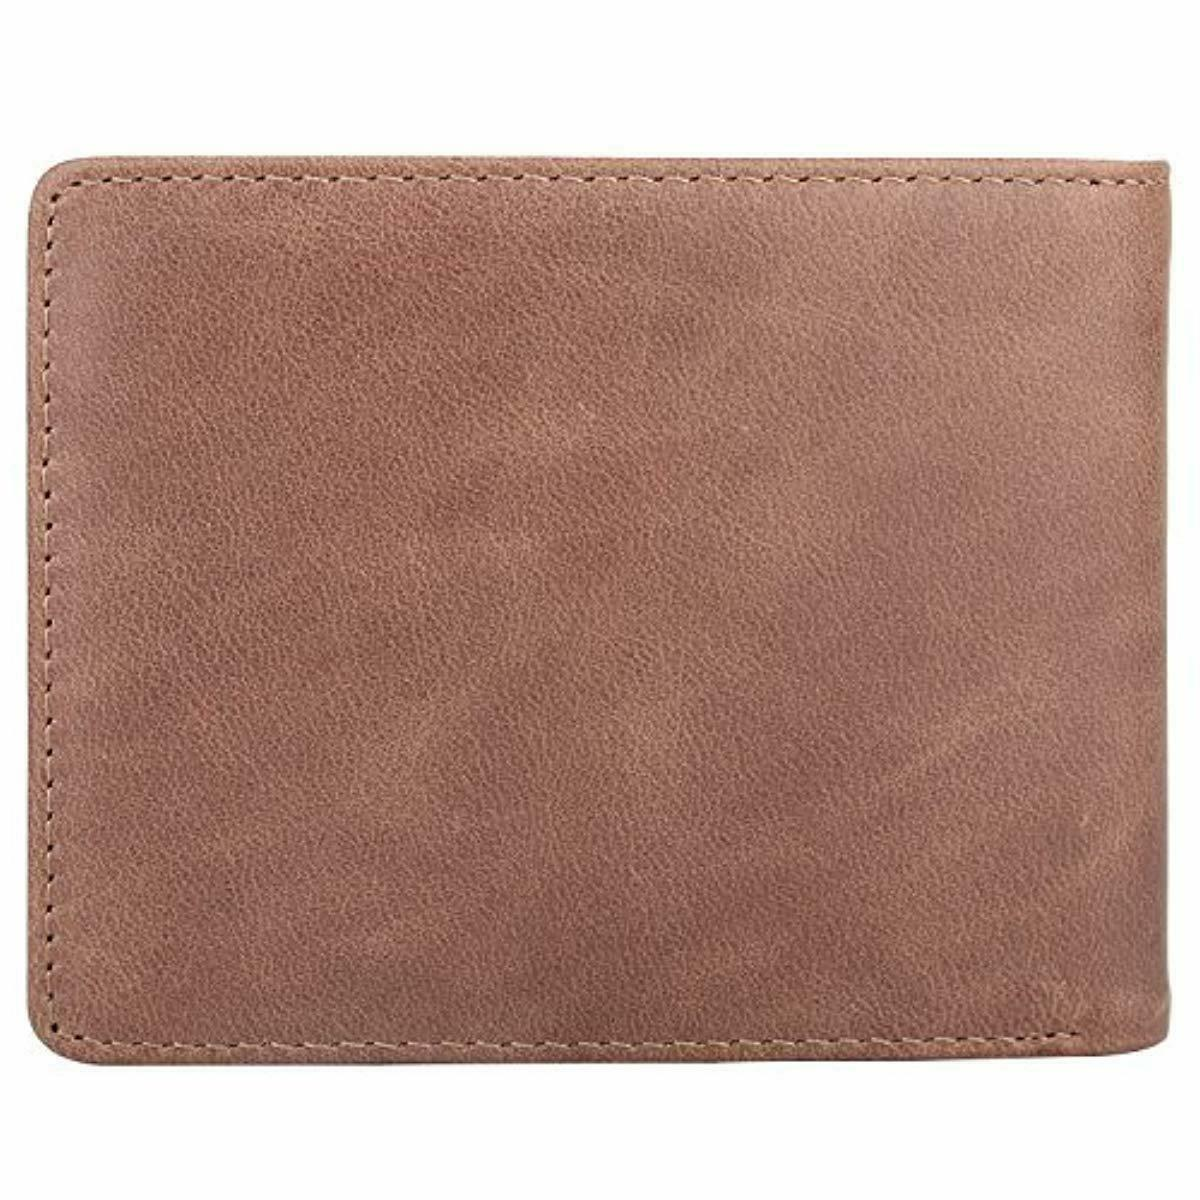 HIMI Leather Soft, RFID Blocking Card Slot Coffee